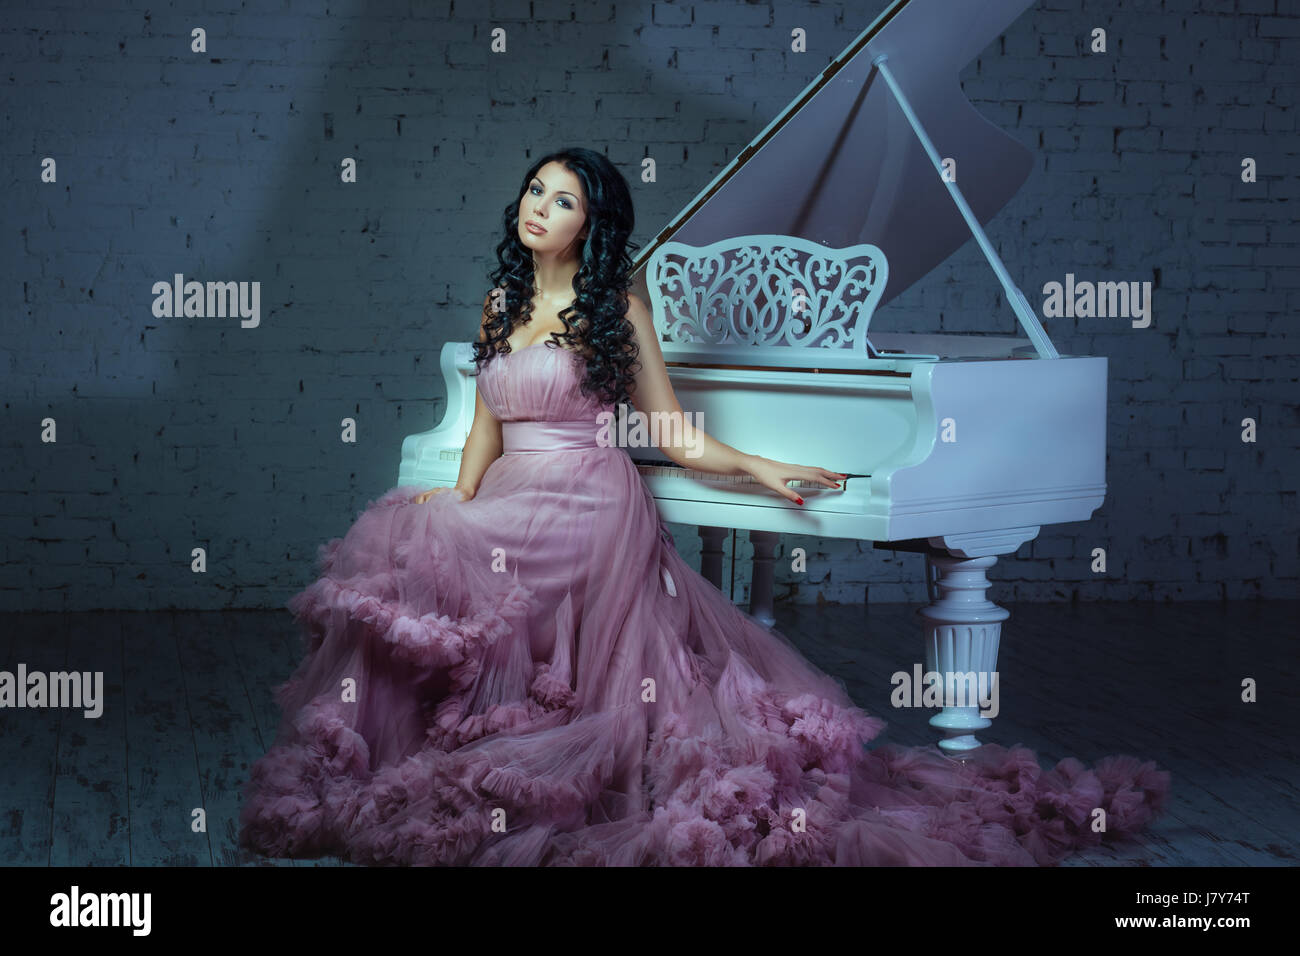 In a dark room girl sitting at a white grand piano. - Stock Image